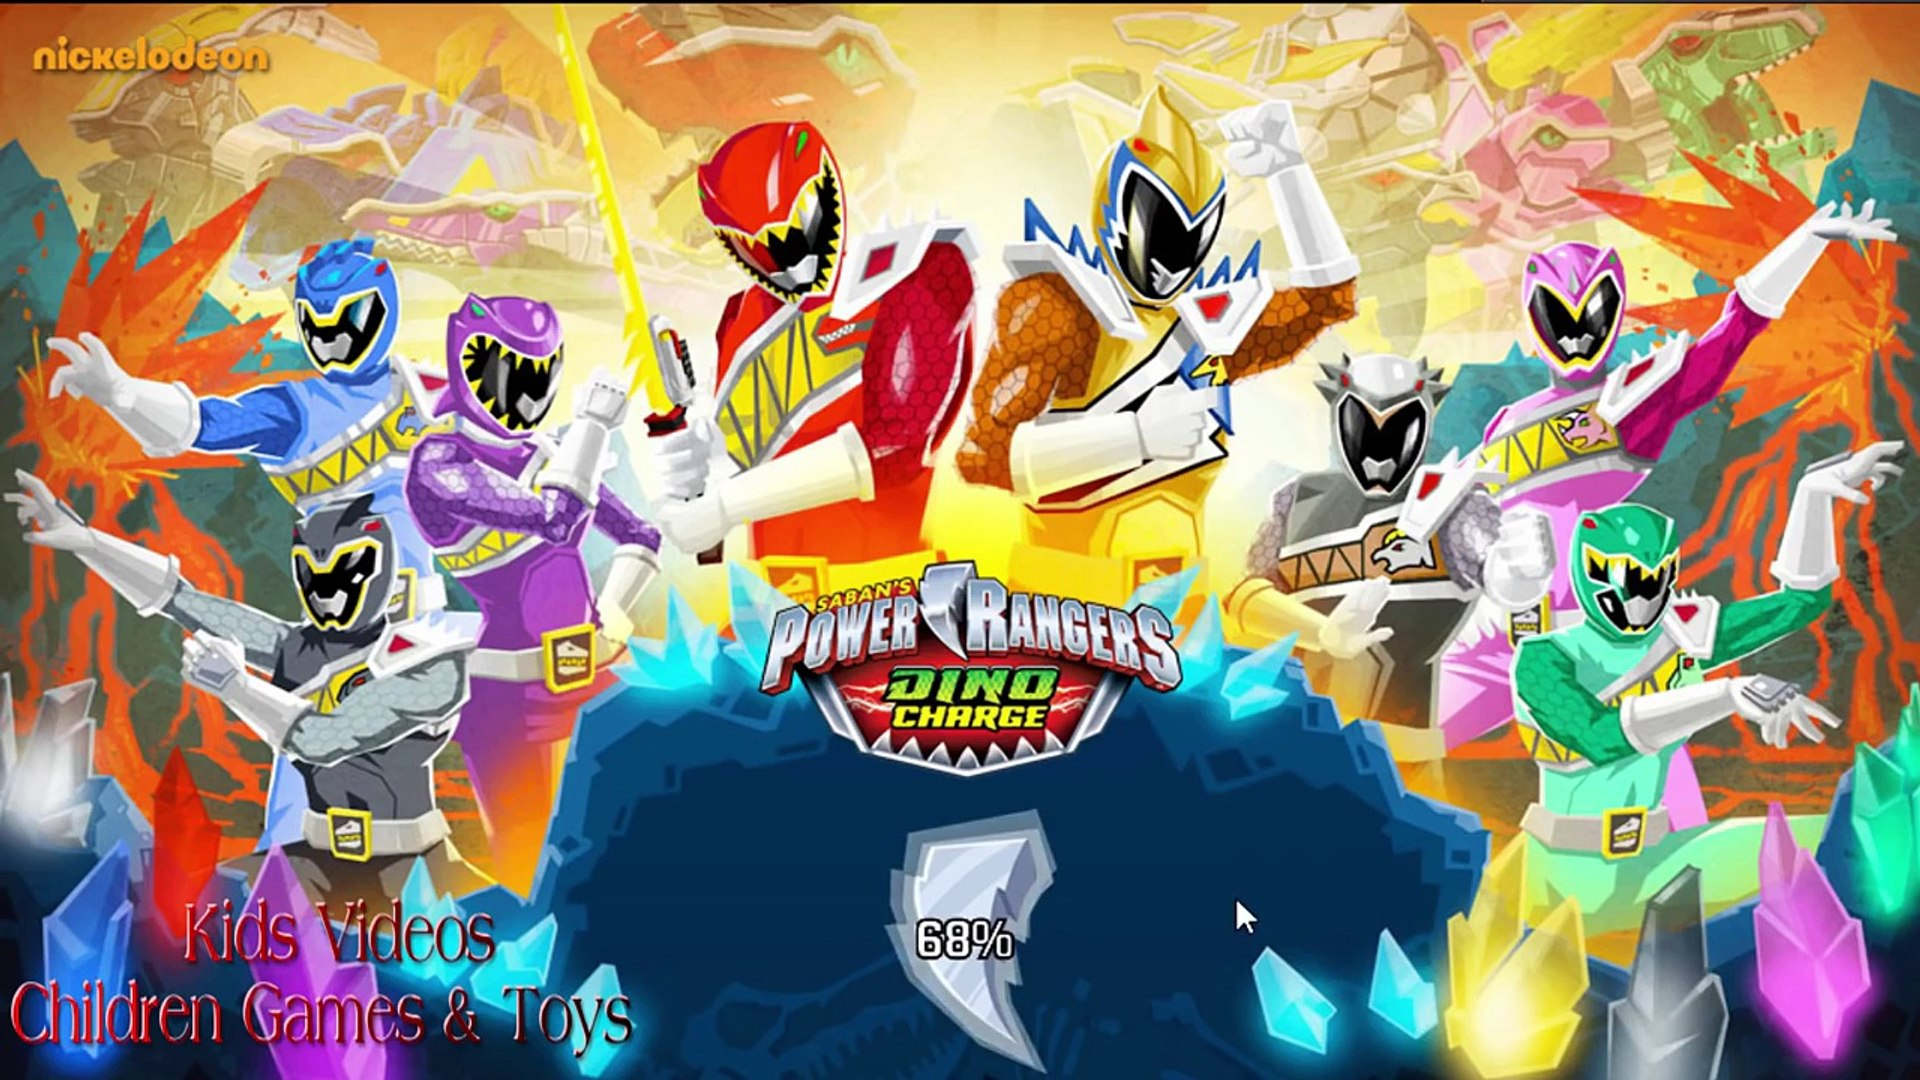 Power Rangers Dino Charge Unleash The Power 2 Power Rangers All Bosses Defeated Nickelodeon Games